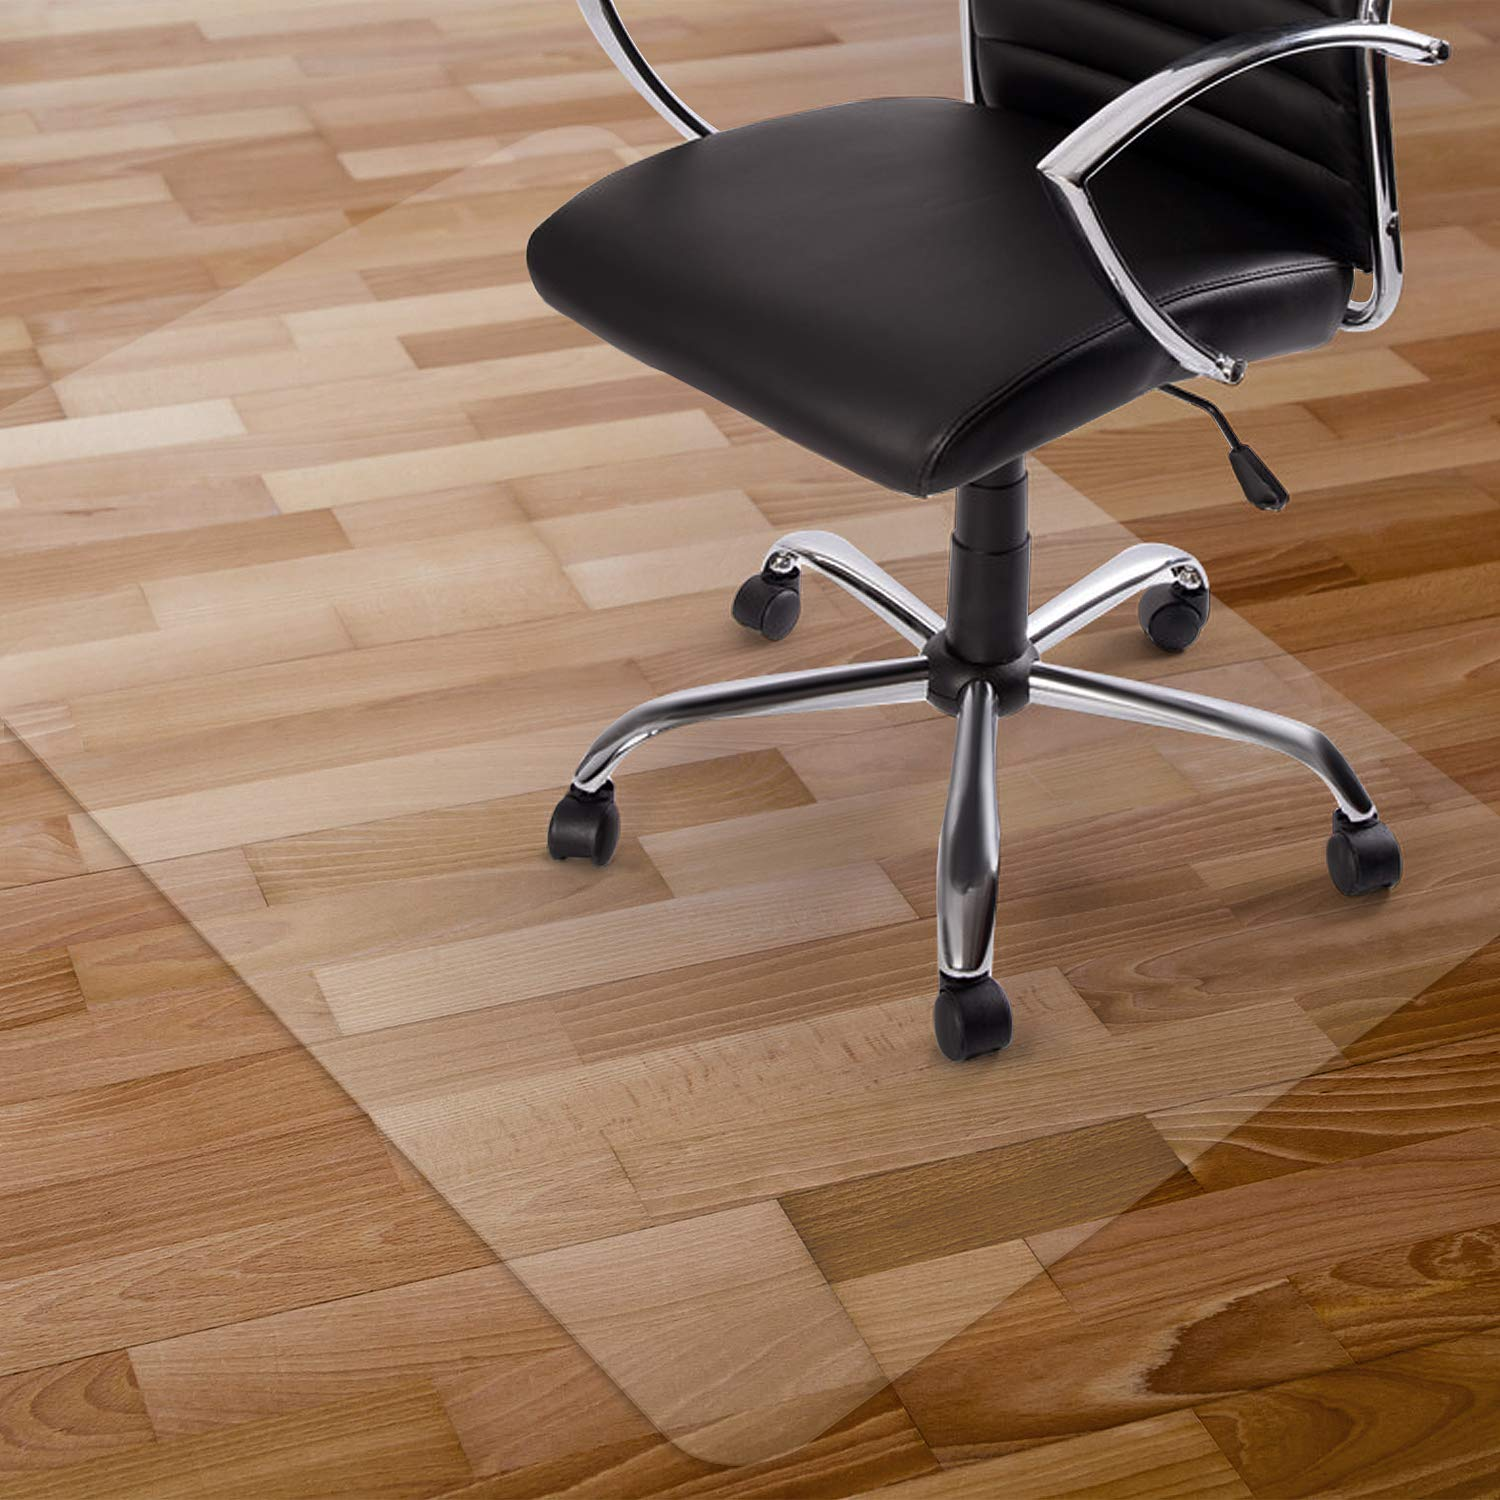 Kuyal Clear Chair Mat, Hard Floor Use, 30'' x 48'' Transparent Office Home Floor Protector mat Chairmats by Kuyal